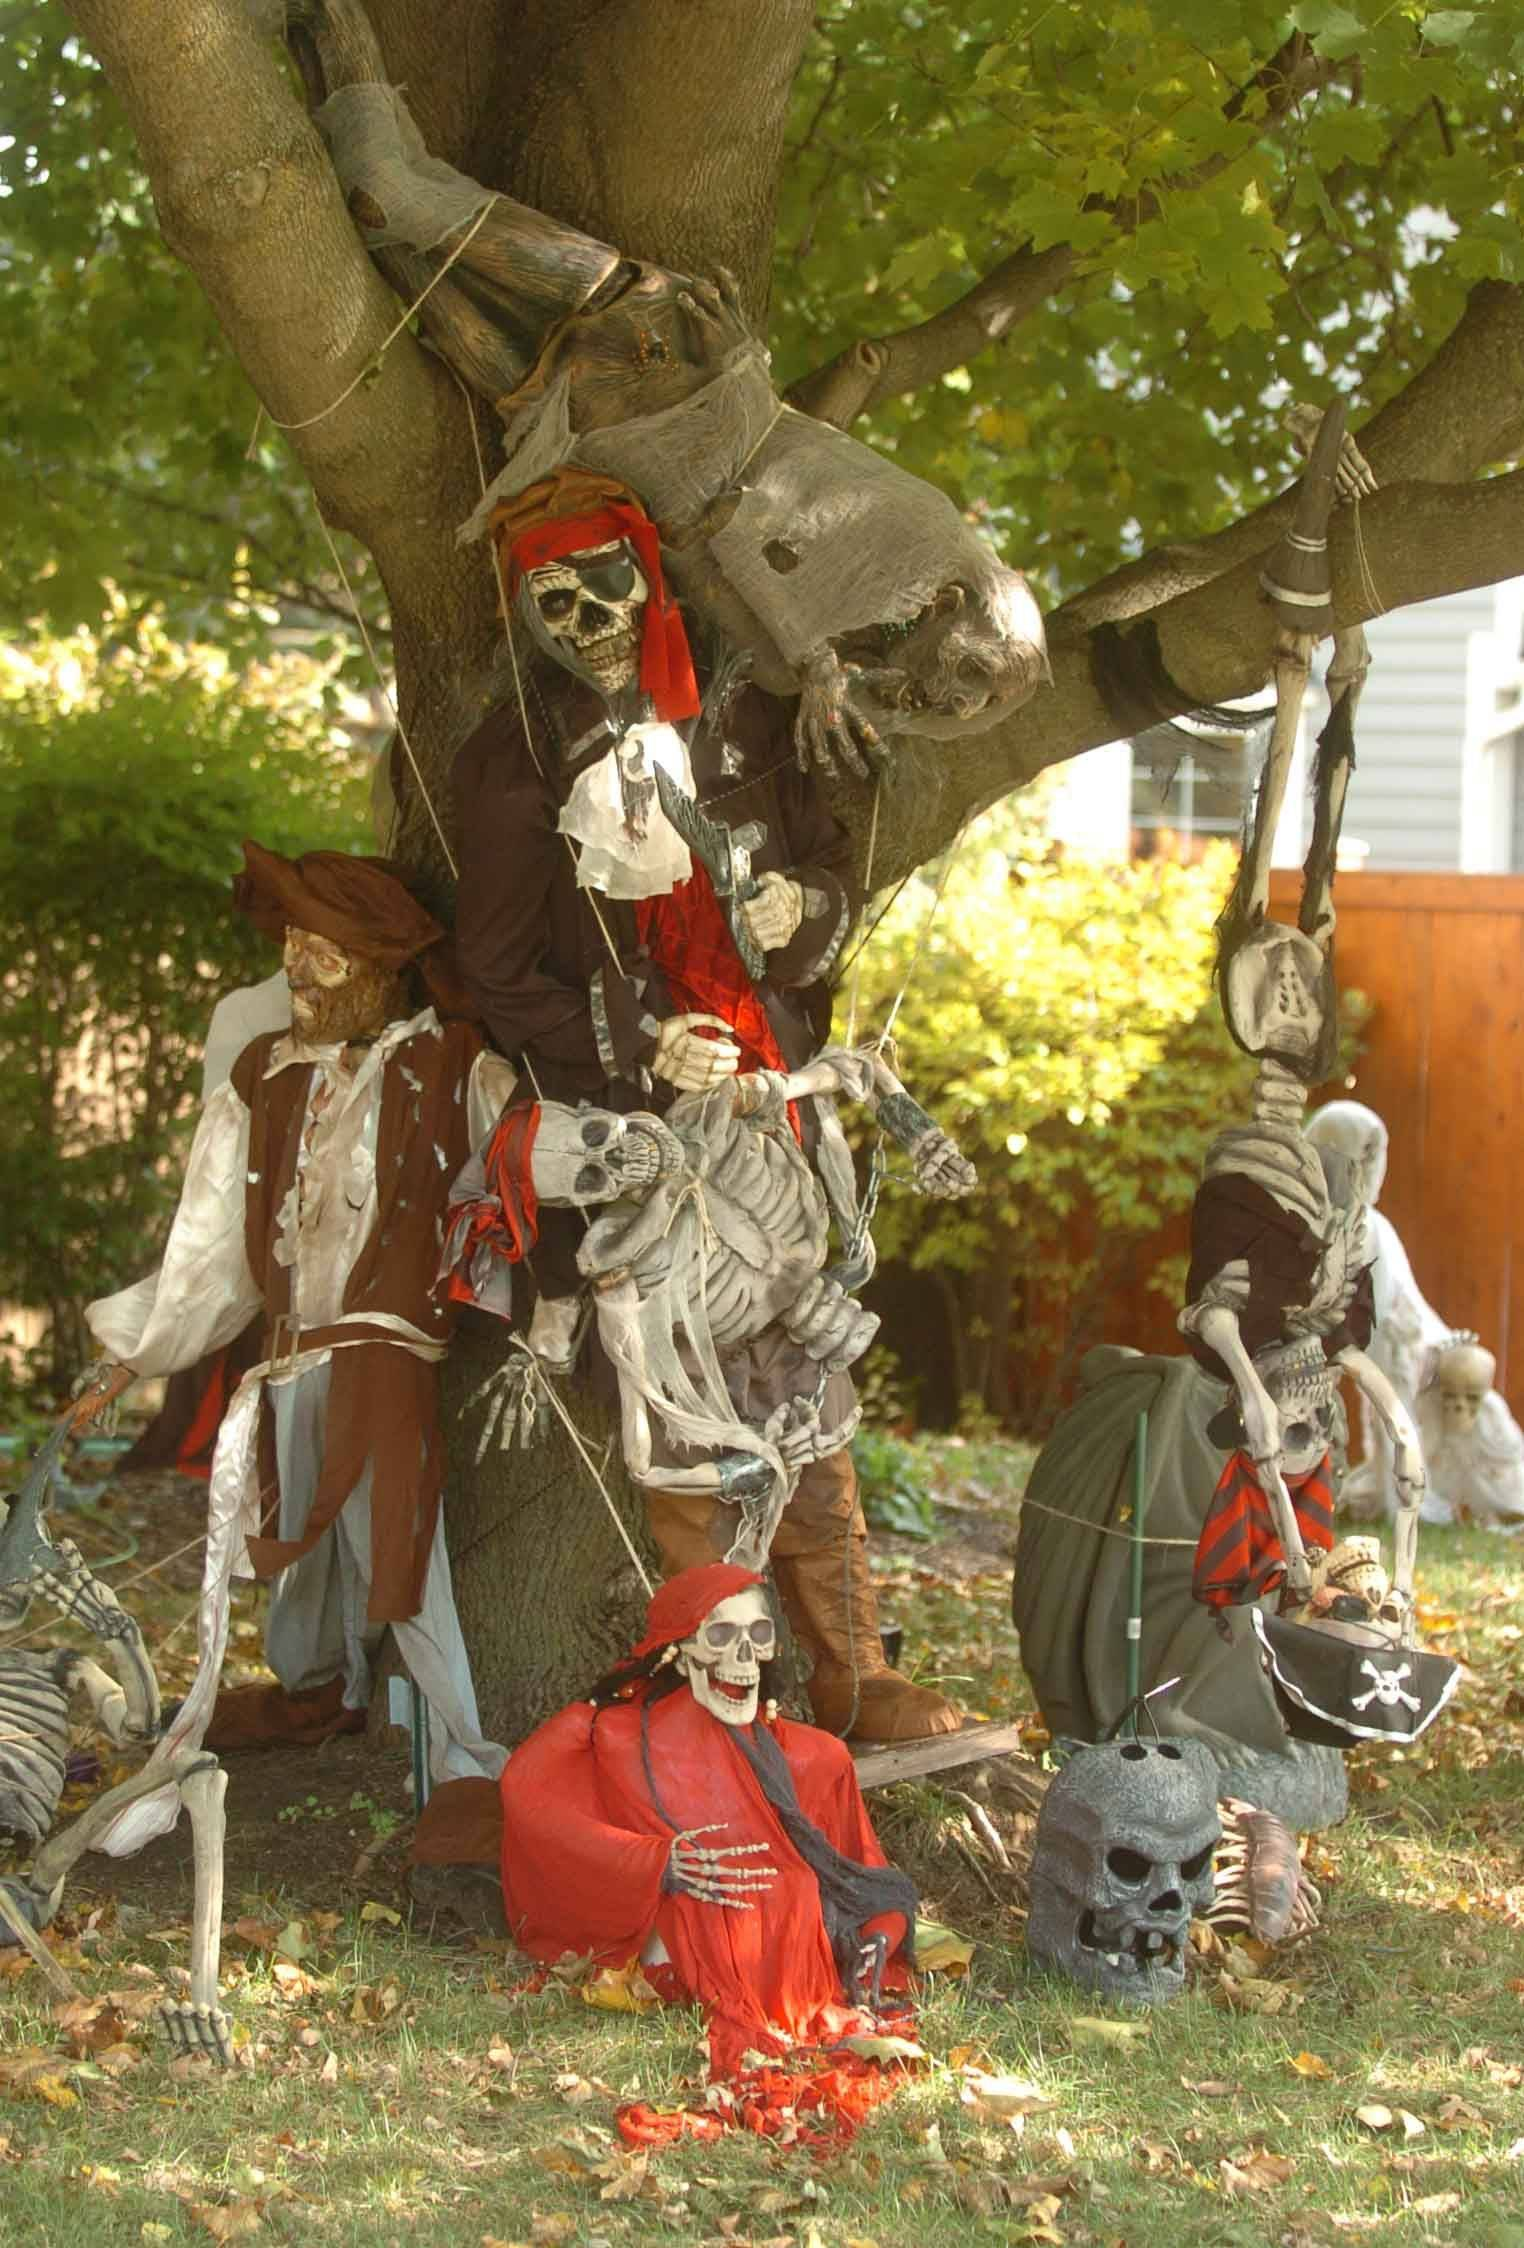 Themed displays dot a yard at 12 N. River Road in Naperville.